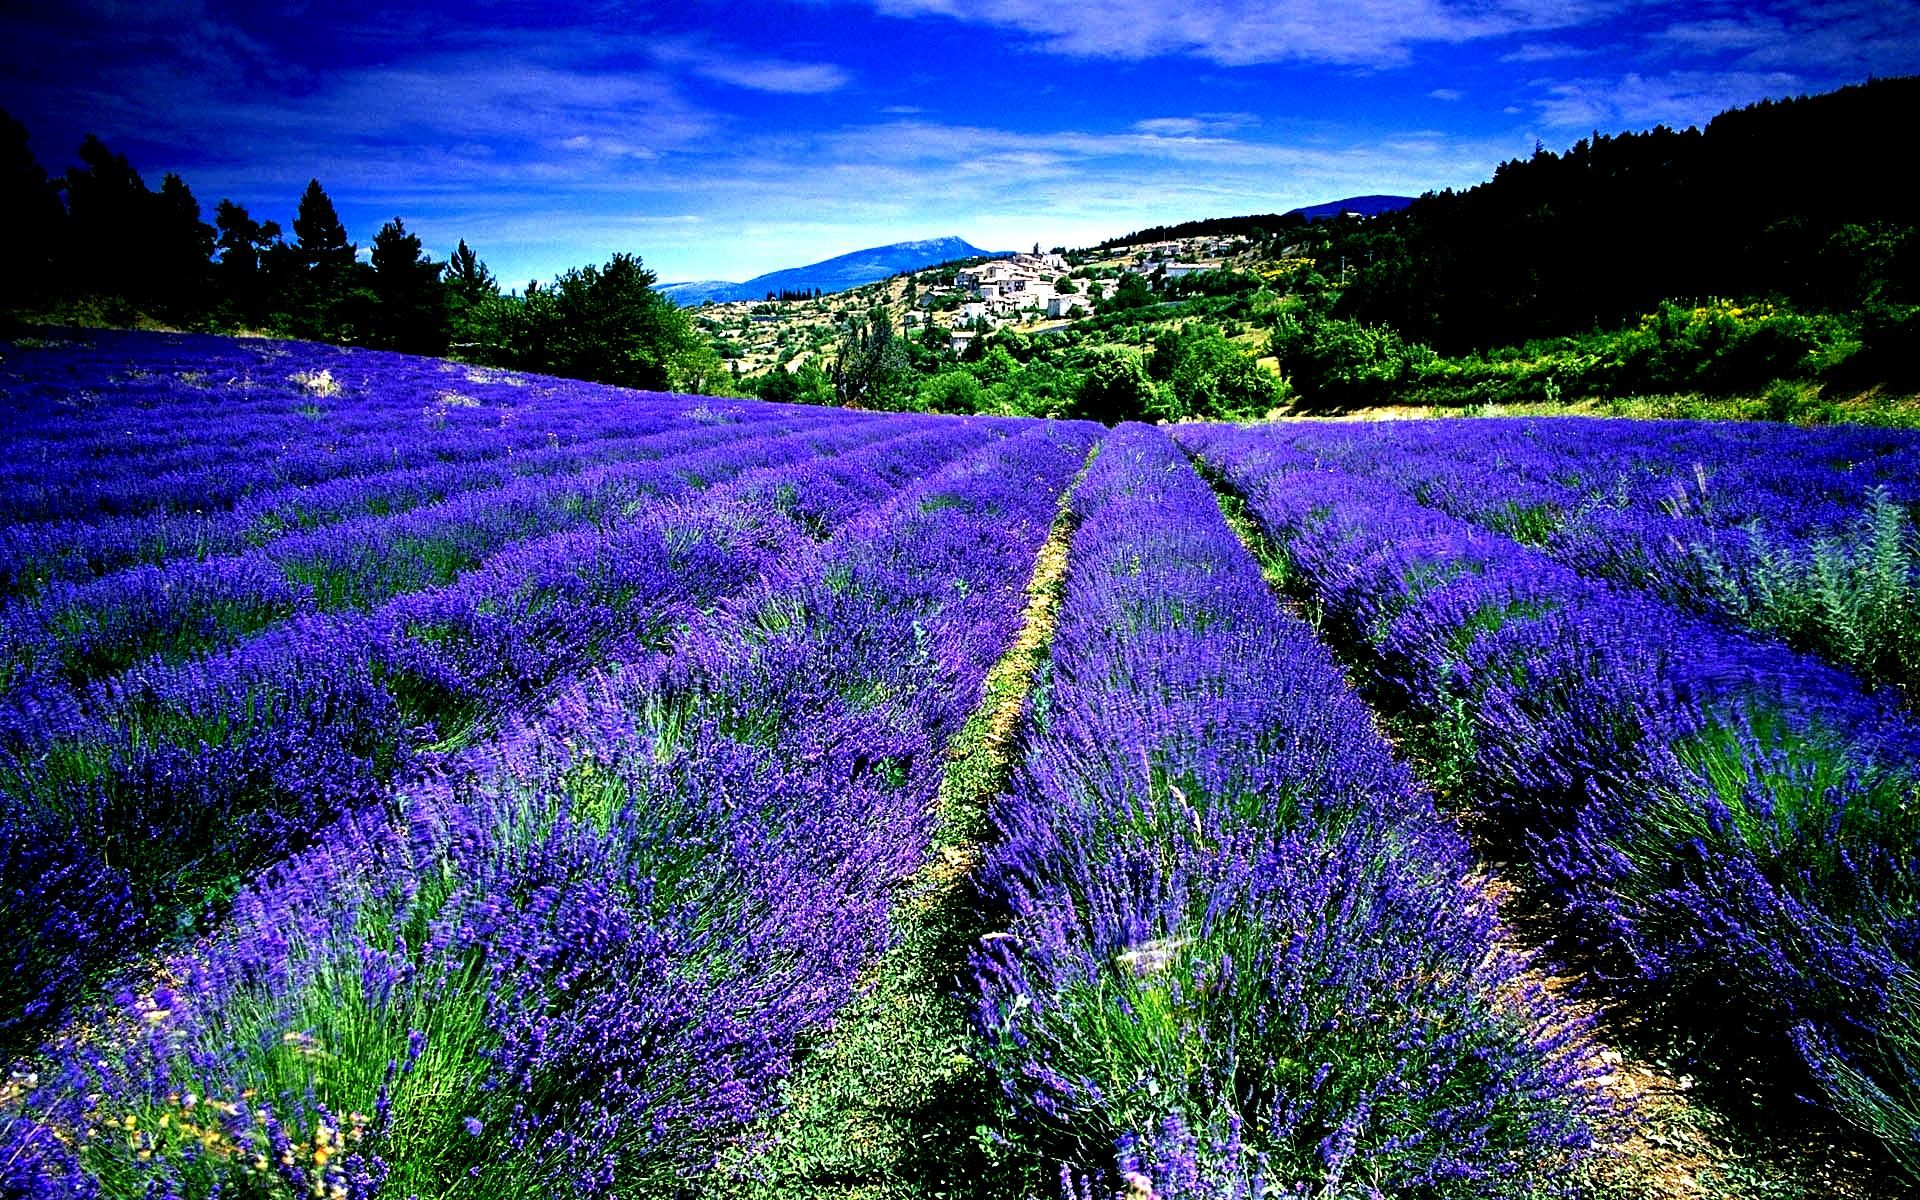 France Lavender Fields [1920 X 1080] Need iPhone 6S